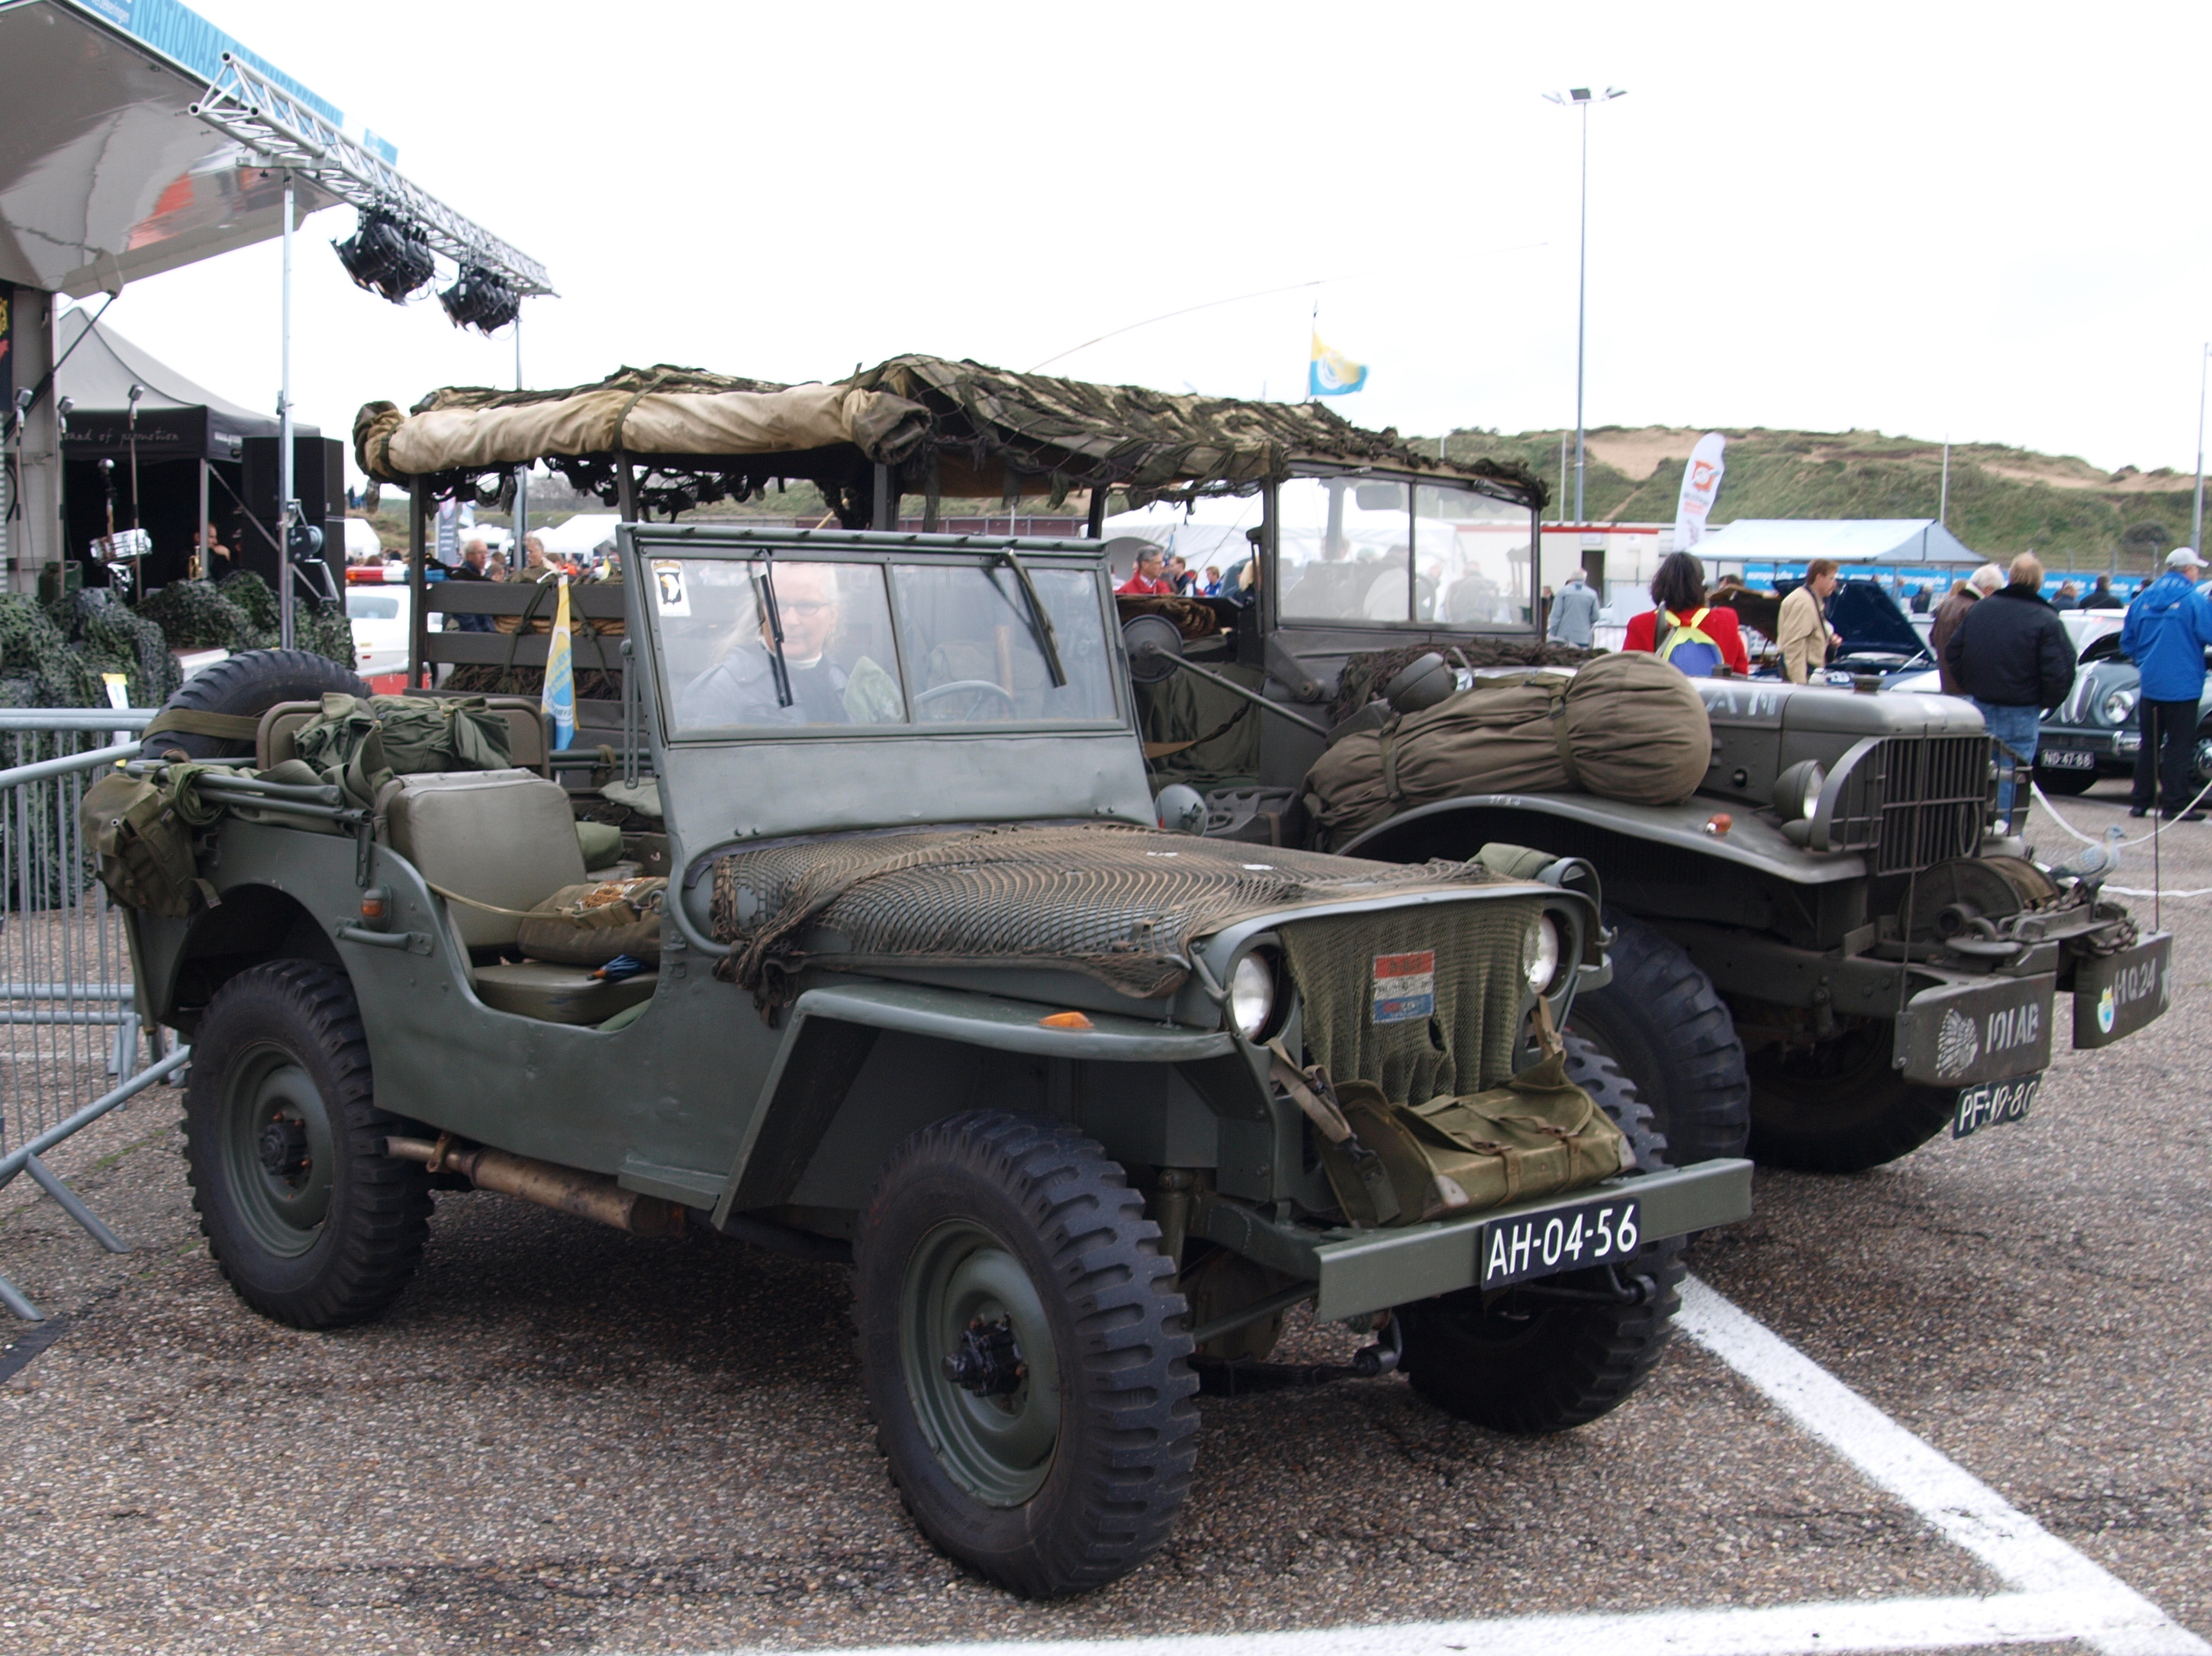 File:Nationale oldtiag Zandvoort 2010, Ford Willys jeep, AH-04 ...